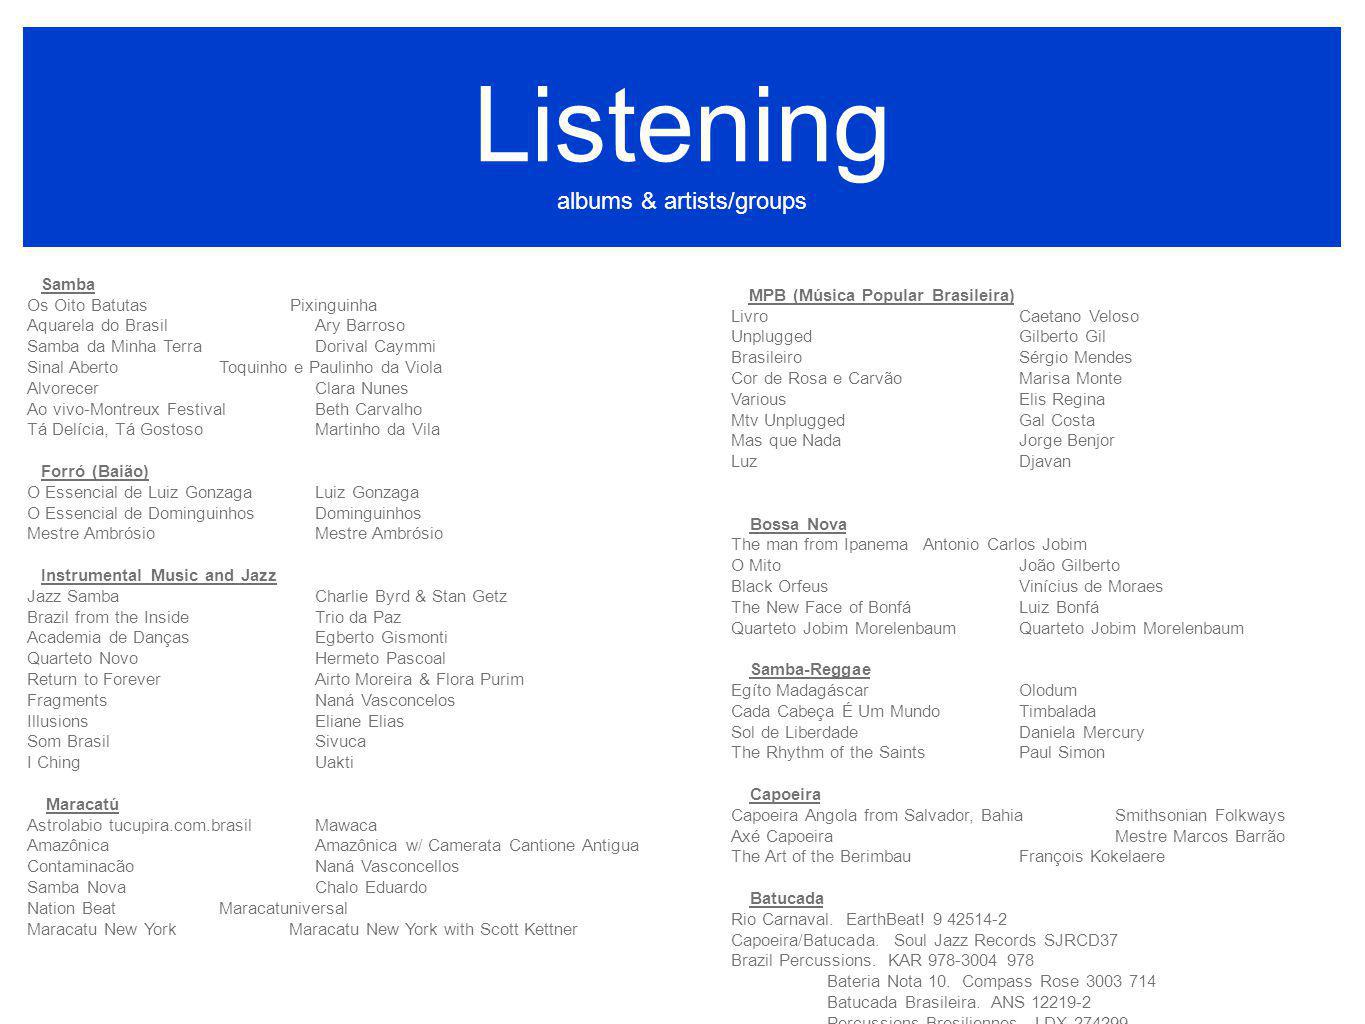 Listening albums & artists/groups